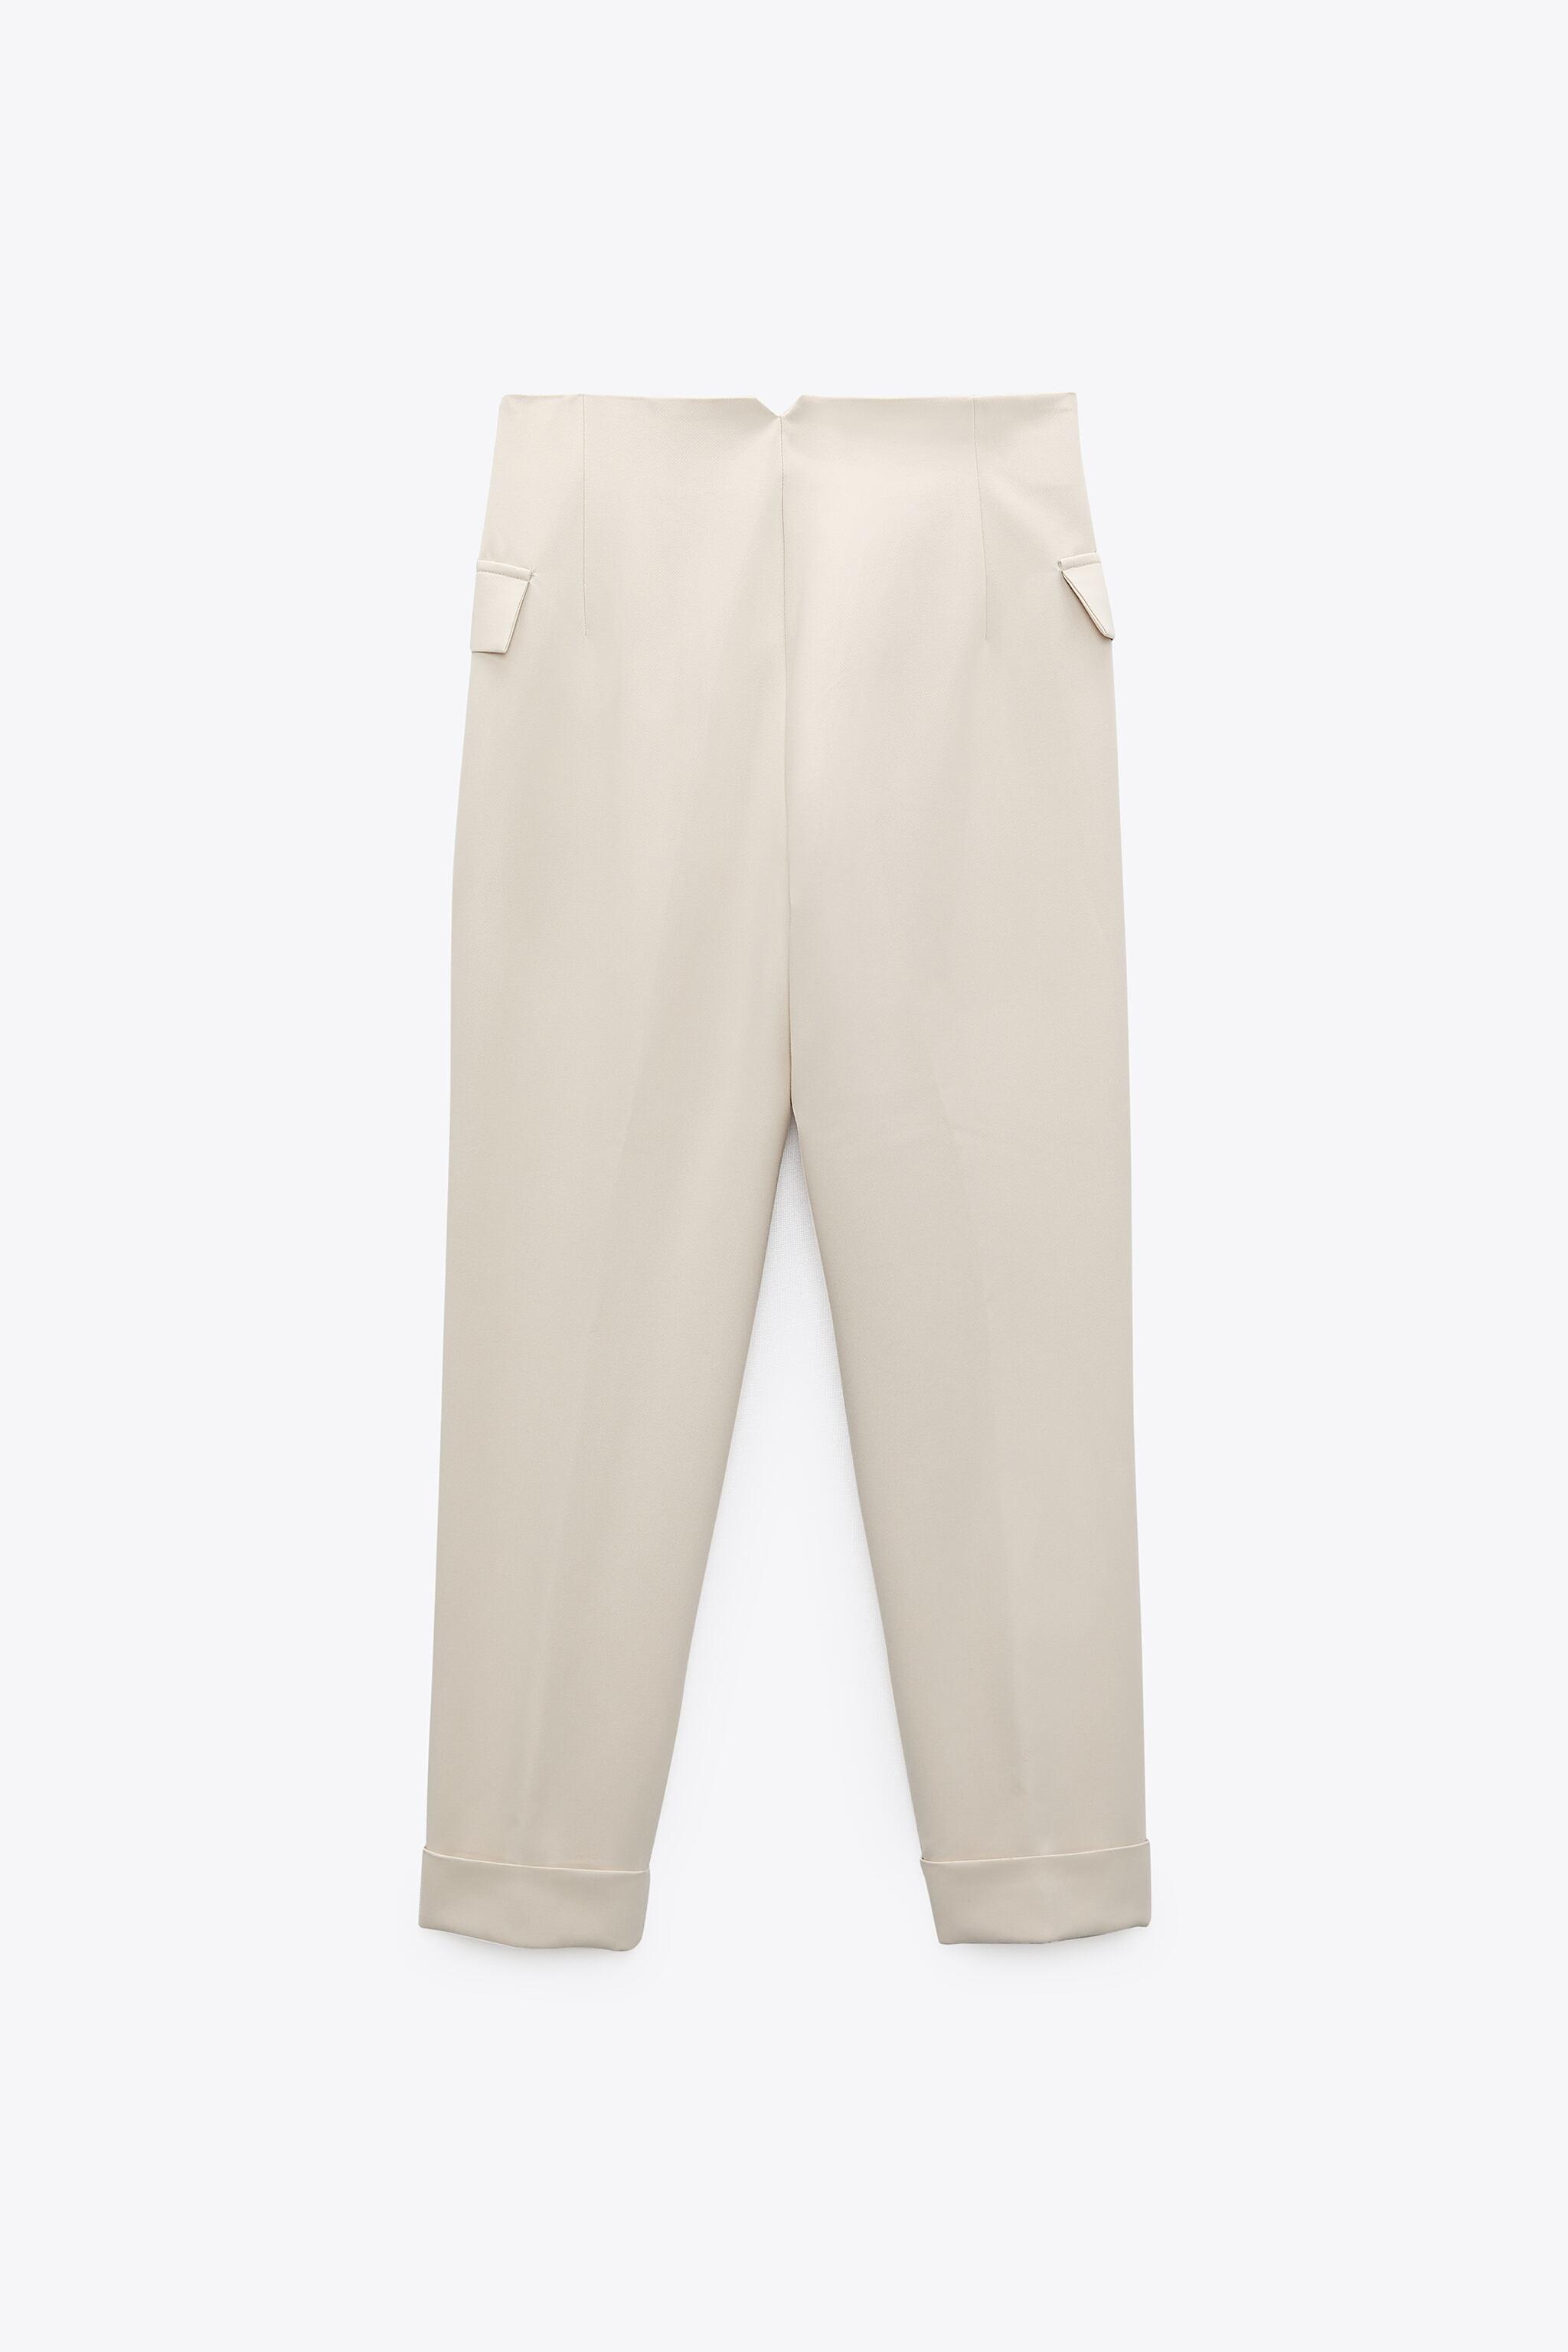 BUTTONED HIGH-WAISTED PANTS 5